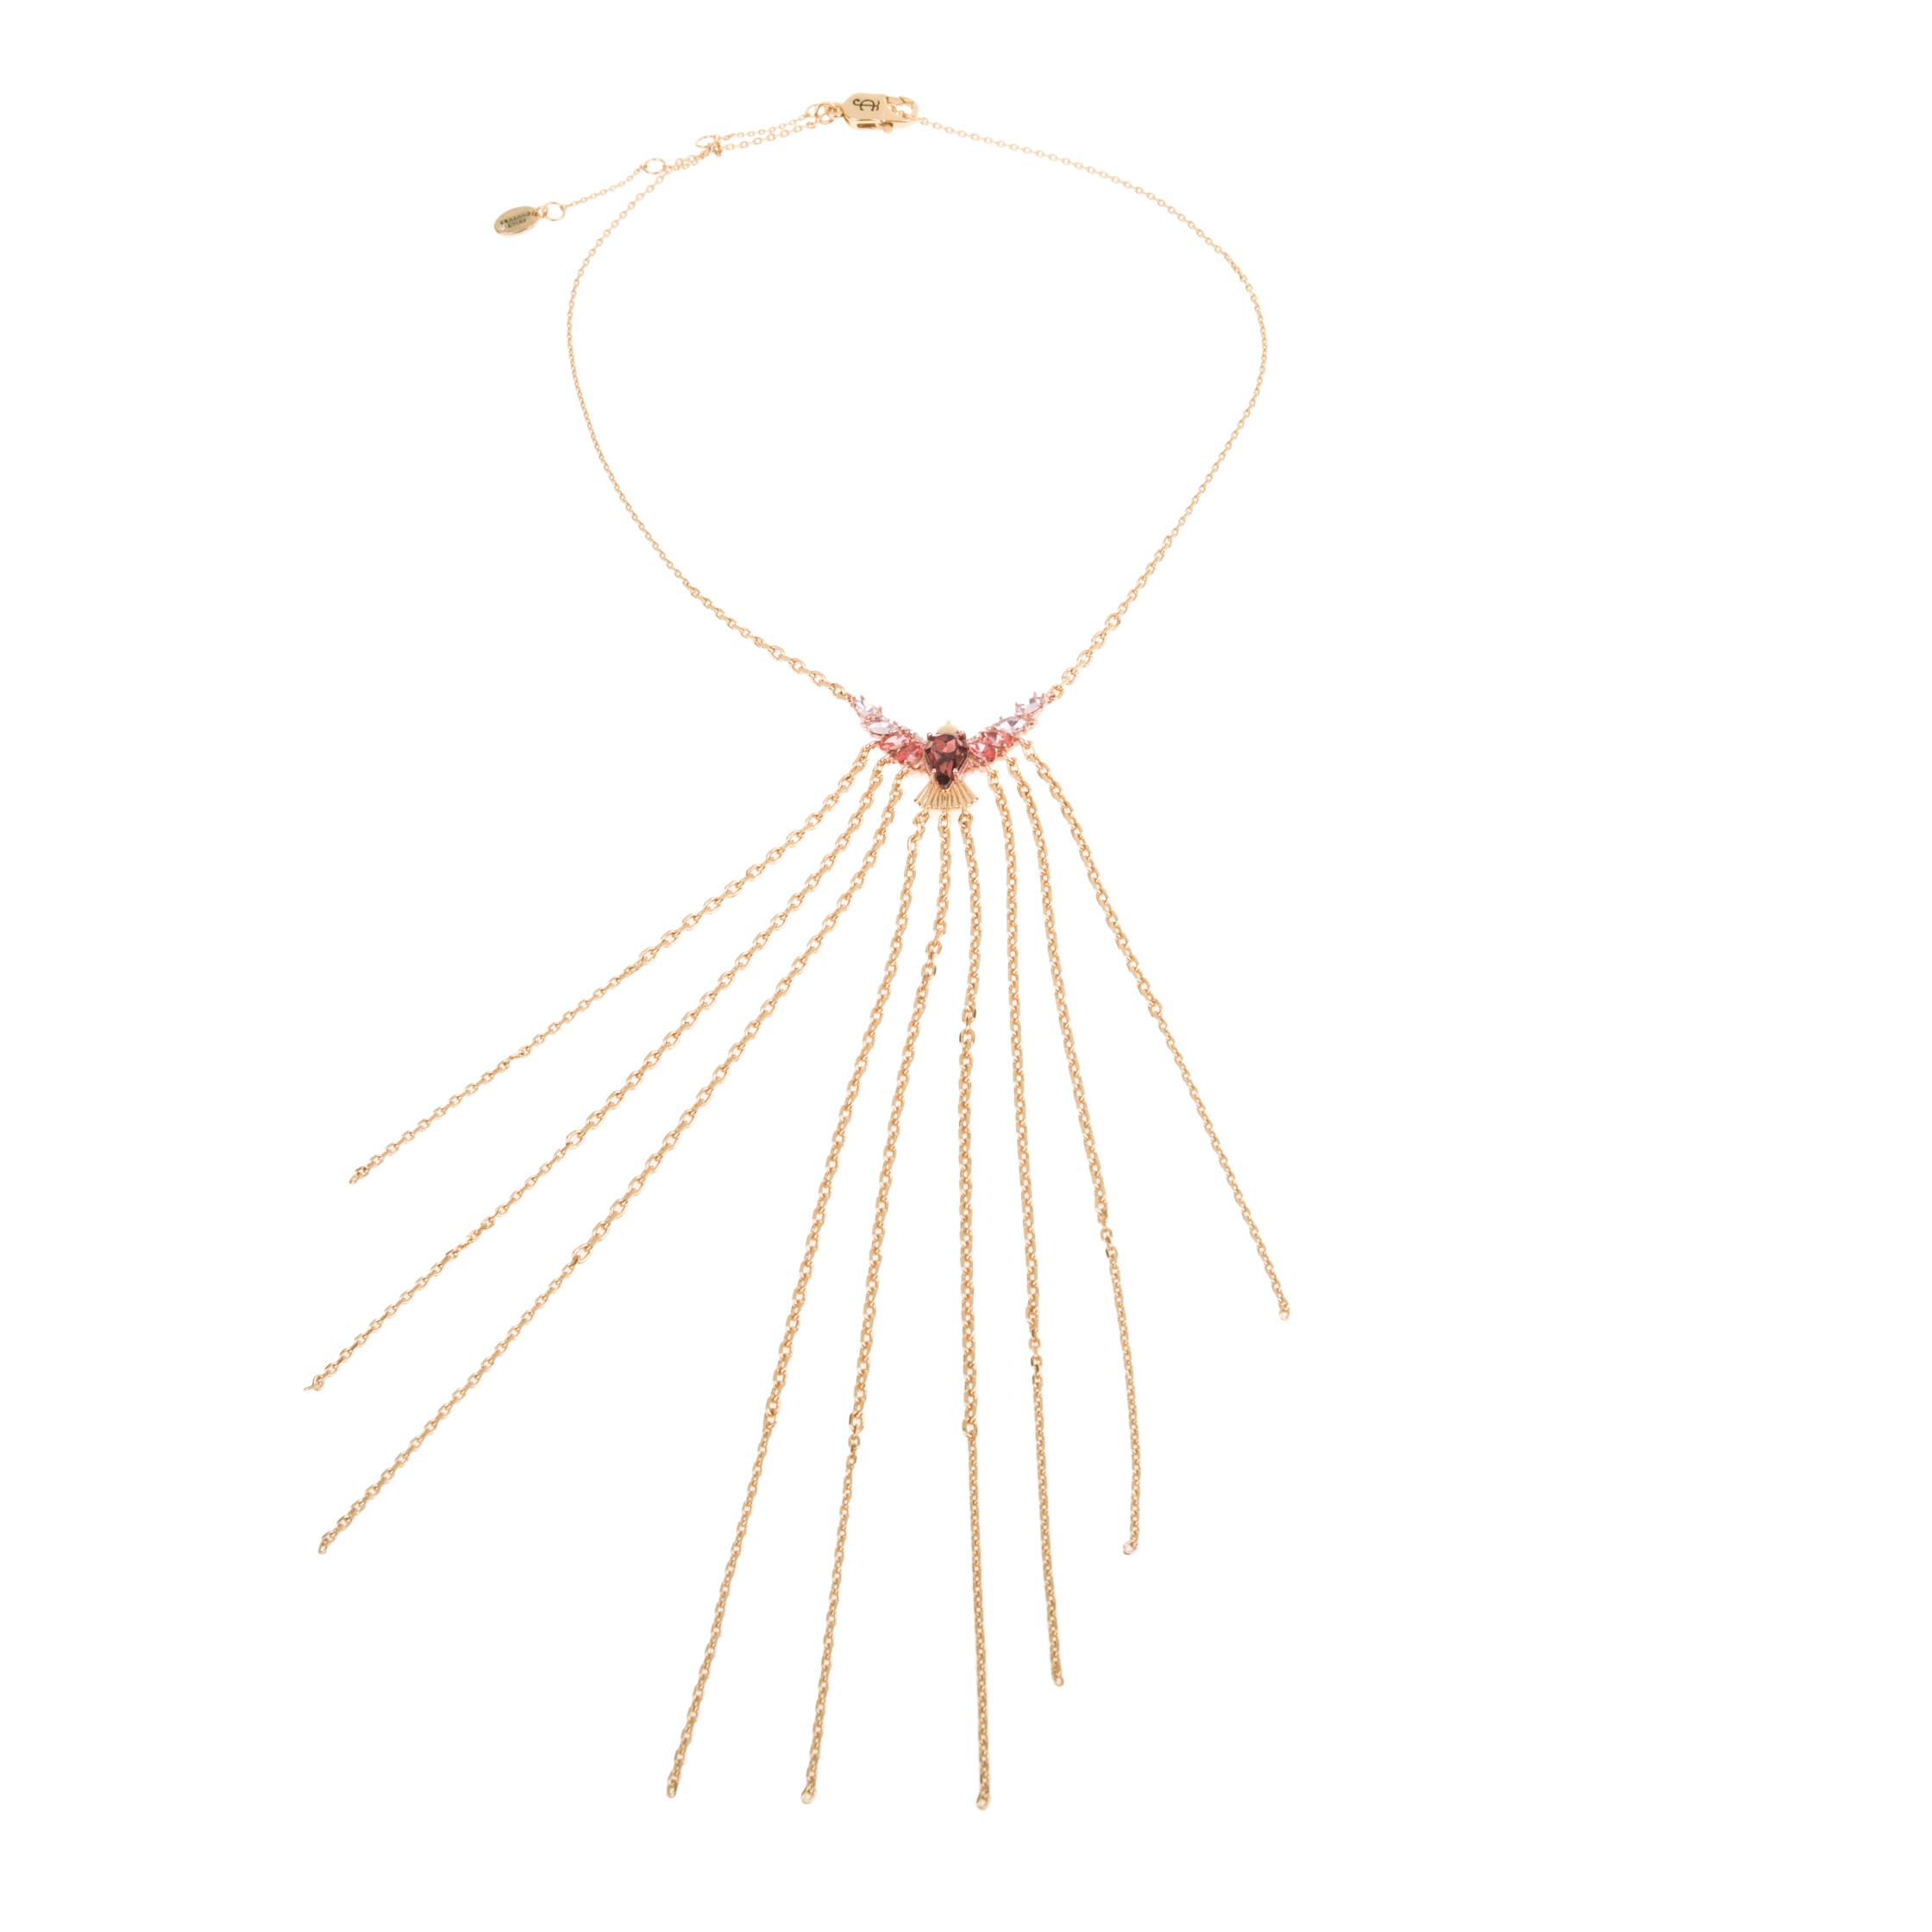 JUICY COUTURE - Κολιέ Juicy Couture FRINGE FORWARD STATEMENT χρυσό